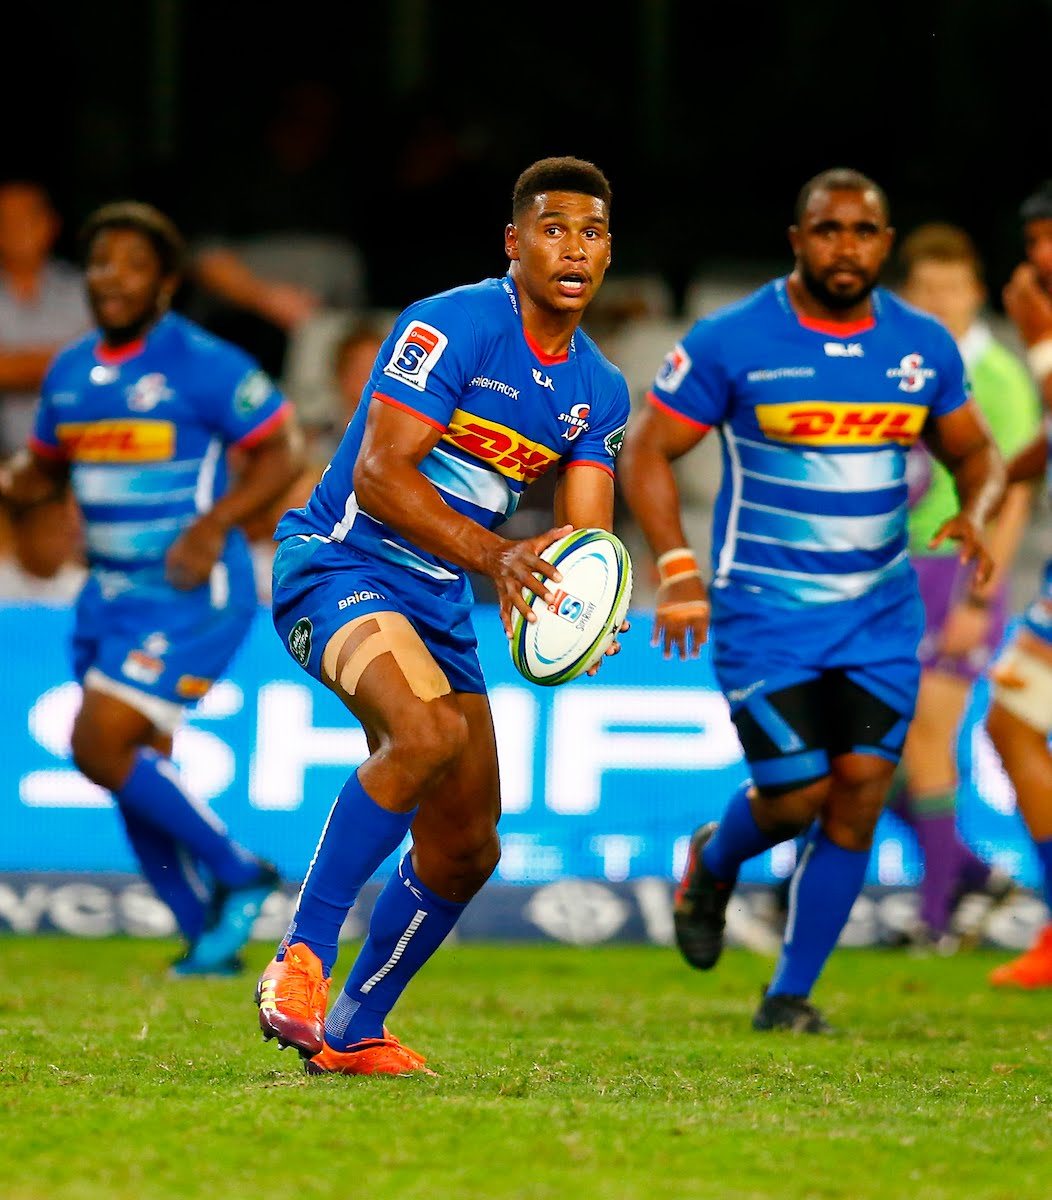 Damian Willemse of the DHL Stormers during the Super Rugby match